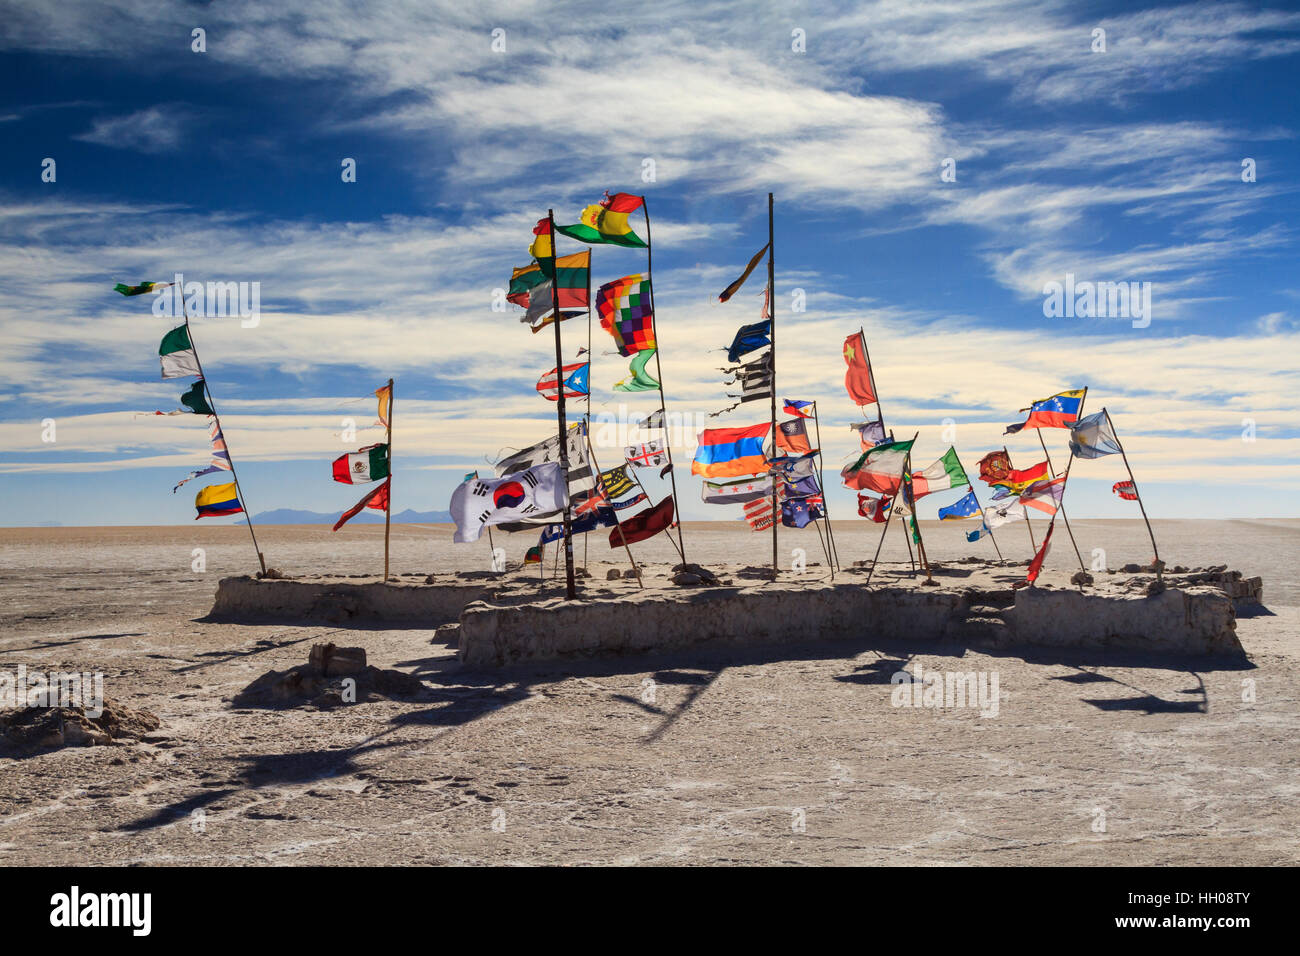 Les drapeaux sur l'Altiplano, le Salar de Uyuni, Bolivie Photo Stock